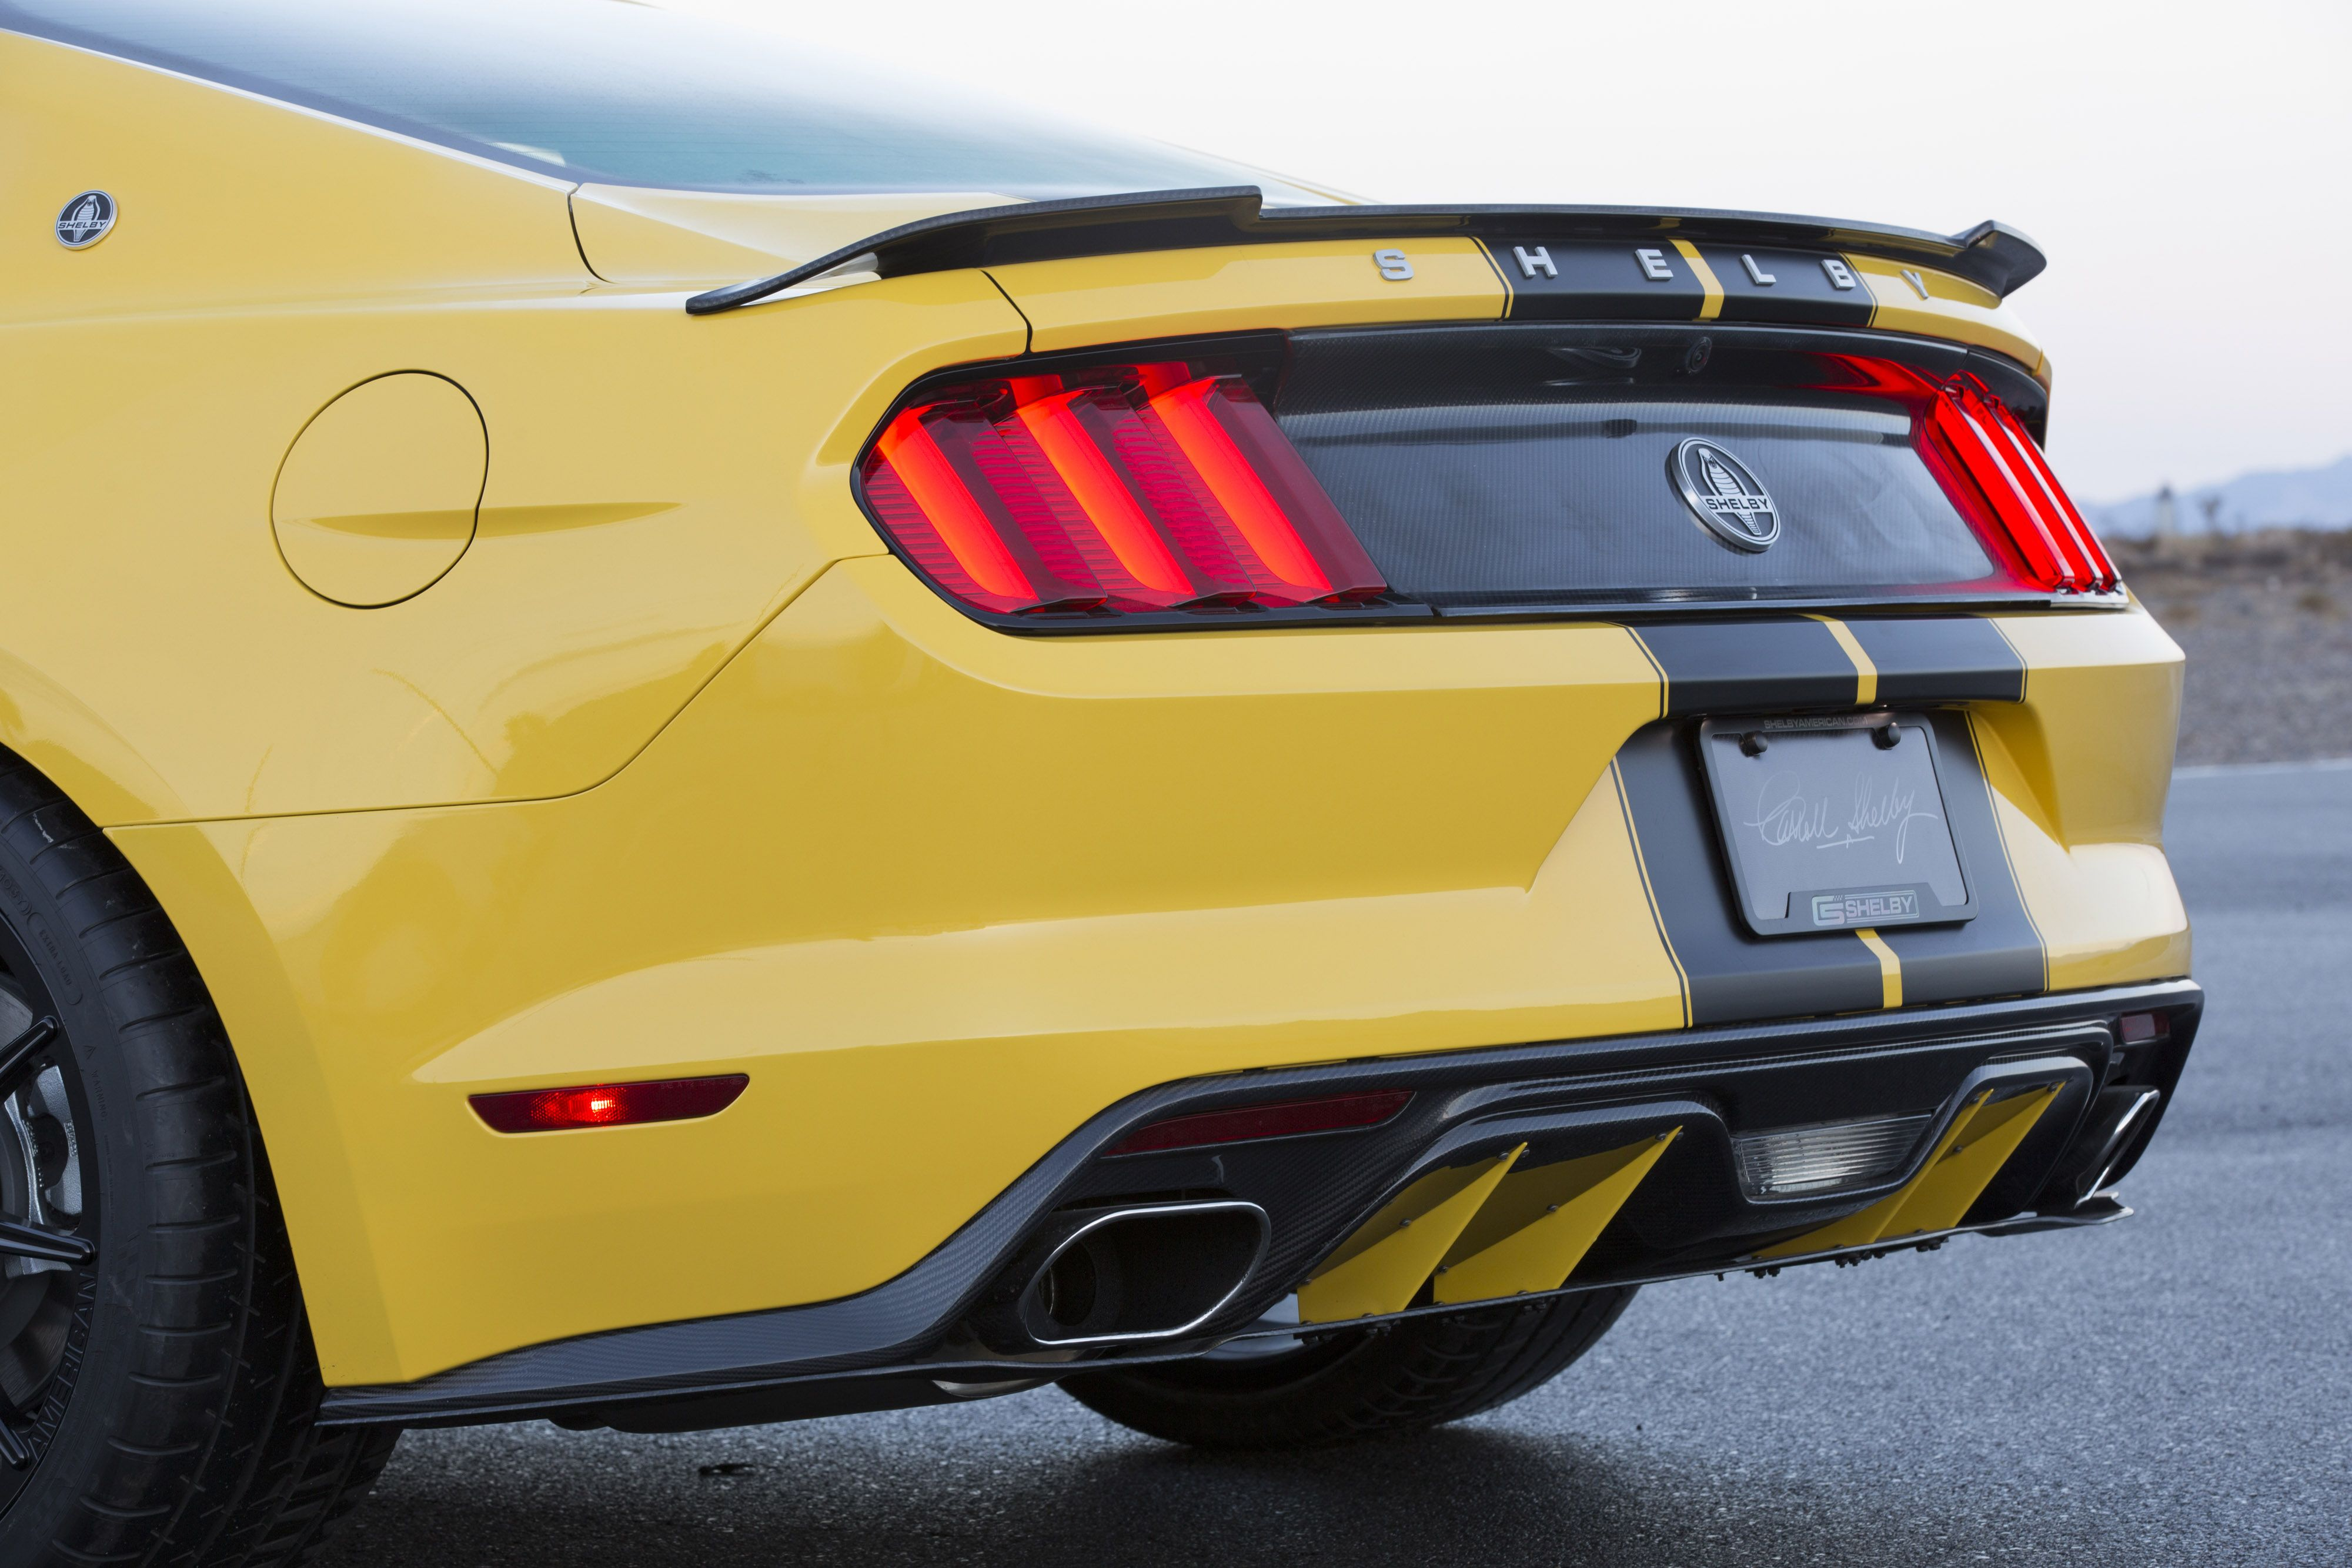 627 hp Shelby GT fills in for the departed GT500